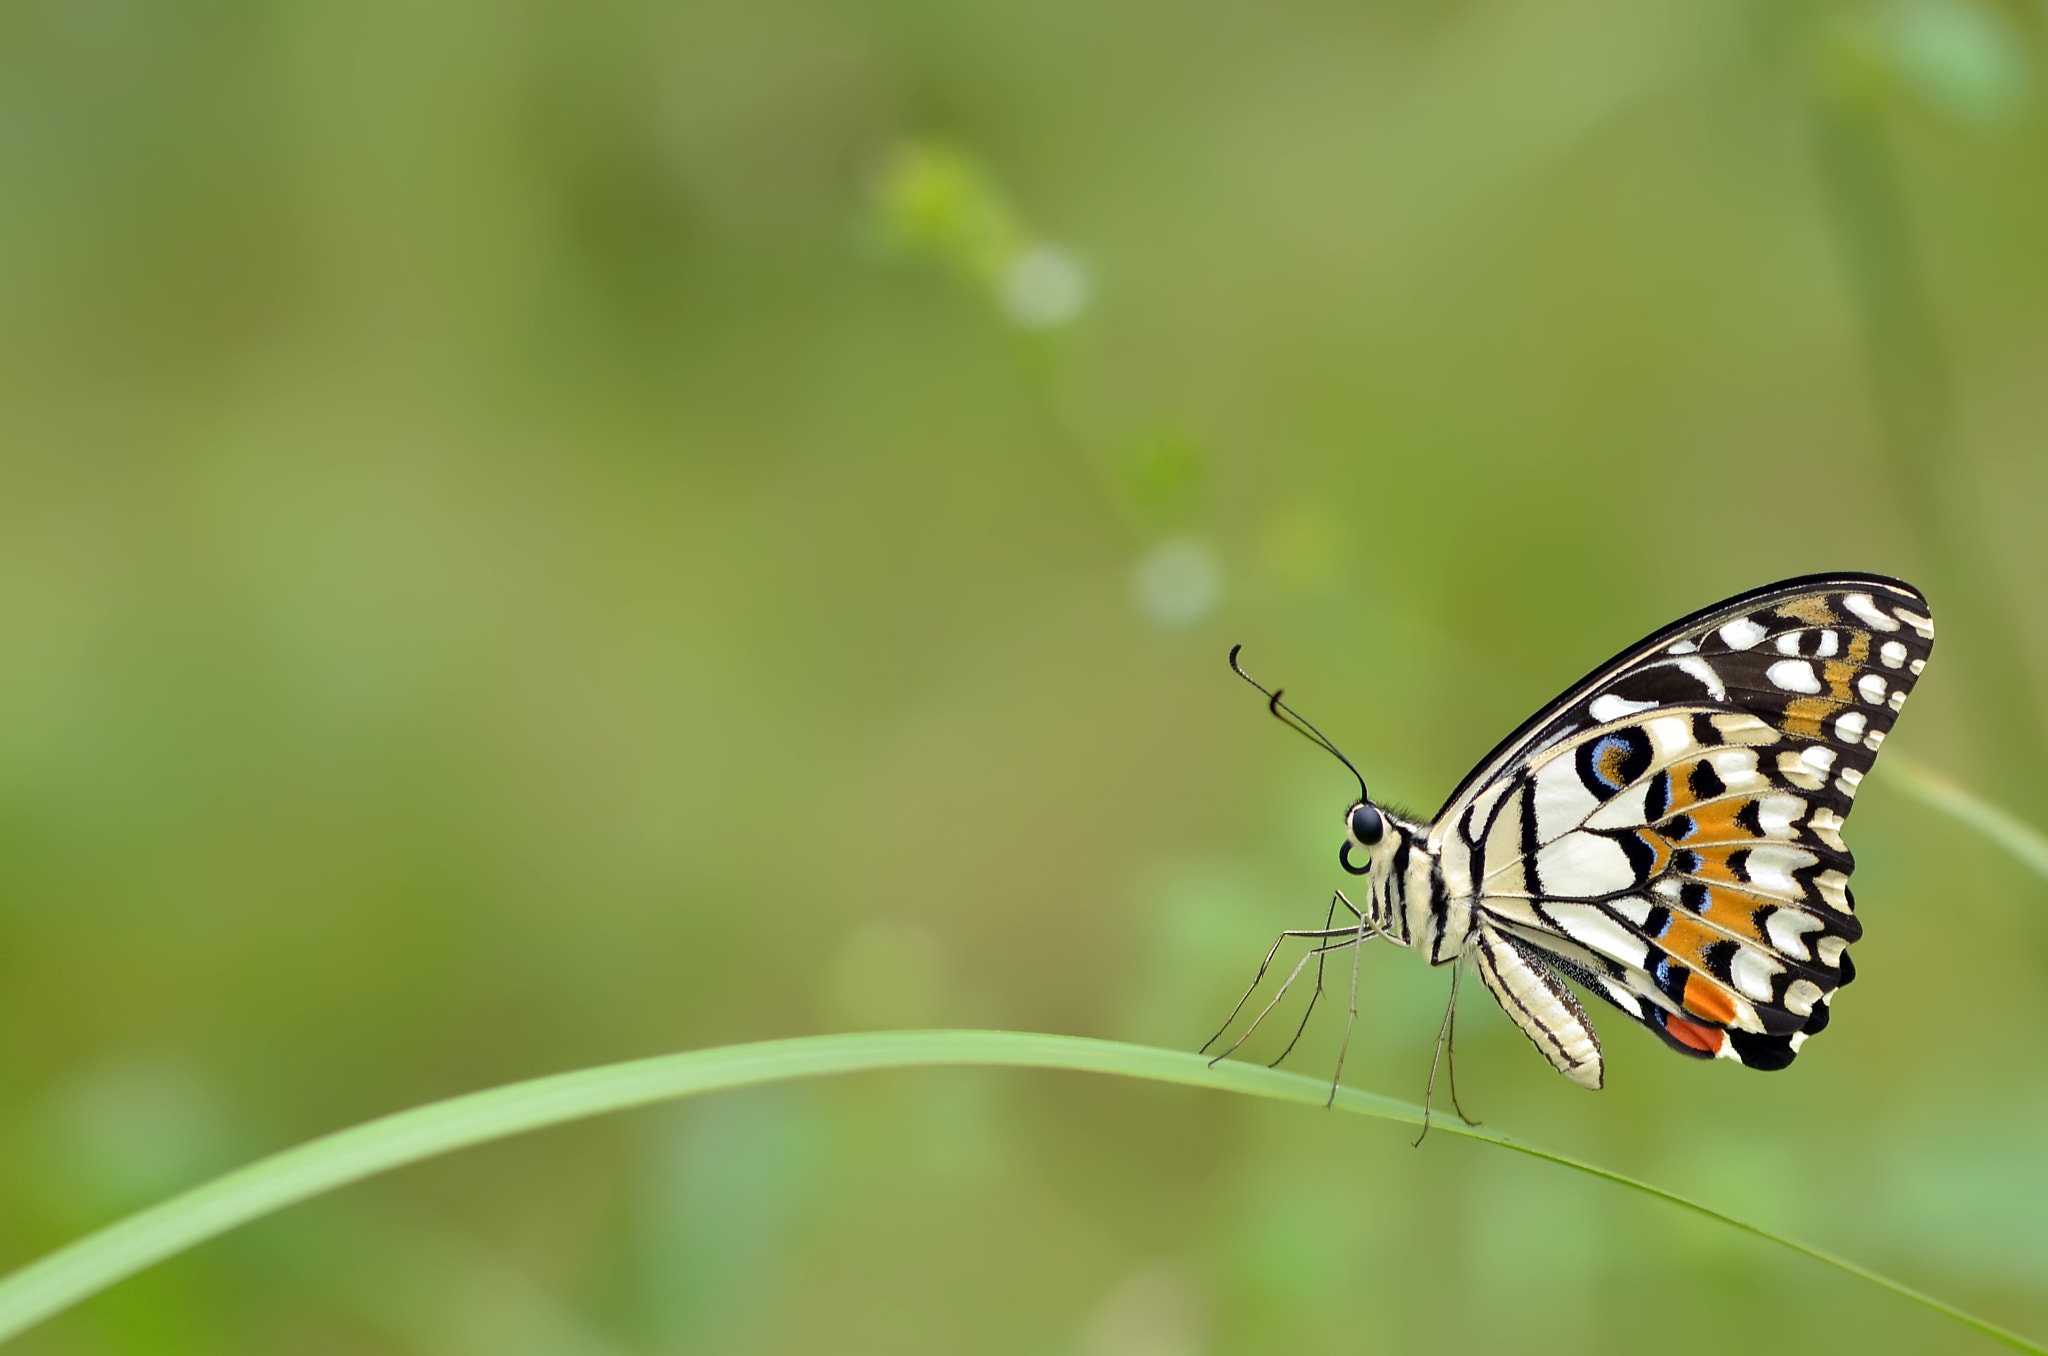 Photograph The Butterfly by Dewo Sri Sumarsono on 500px